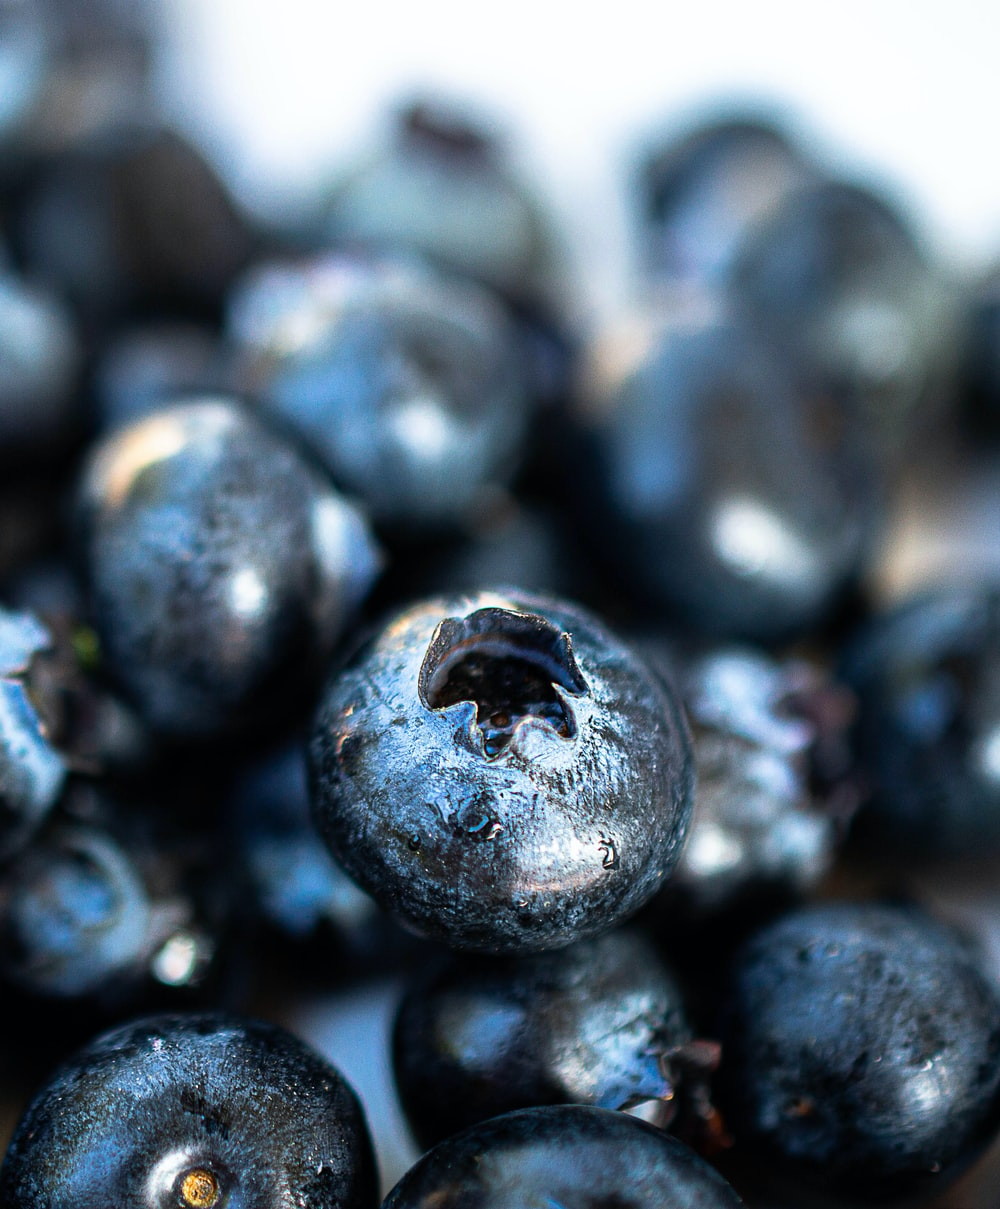 blue berries in close up photography